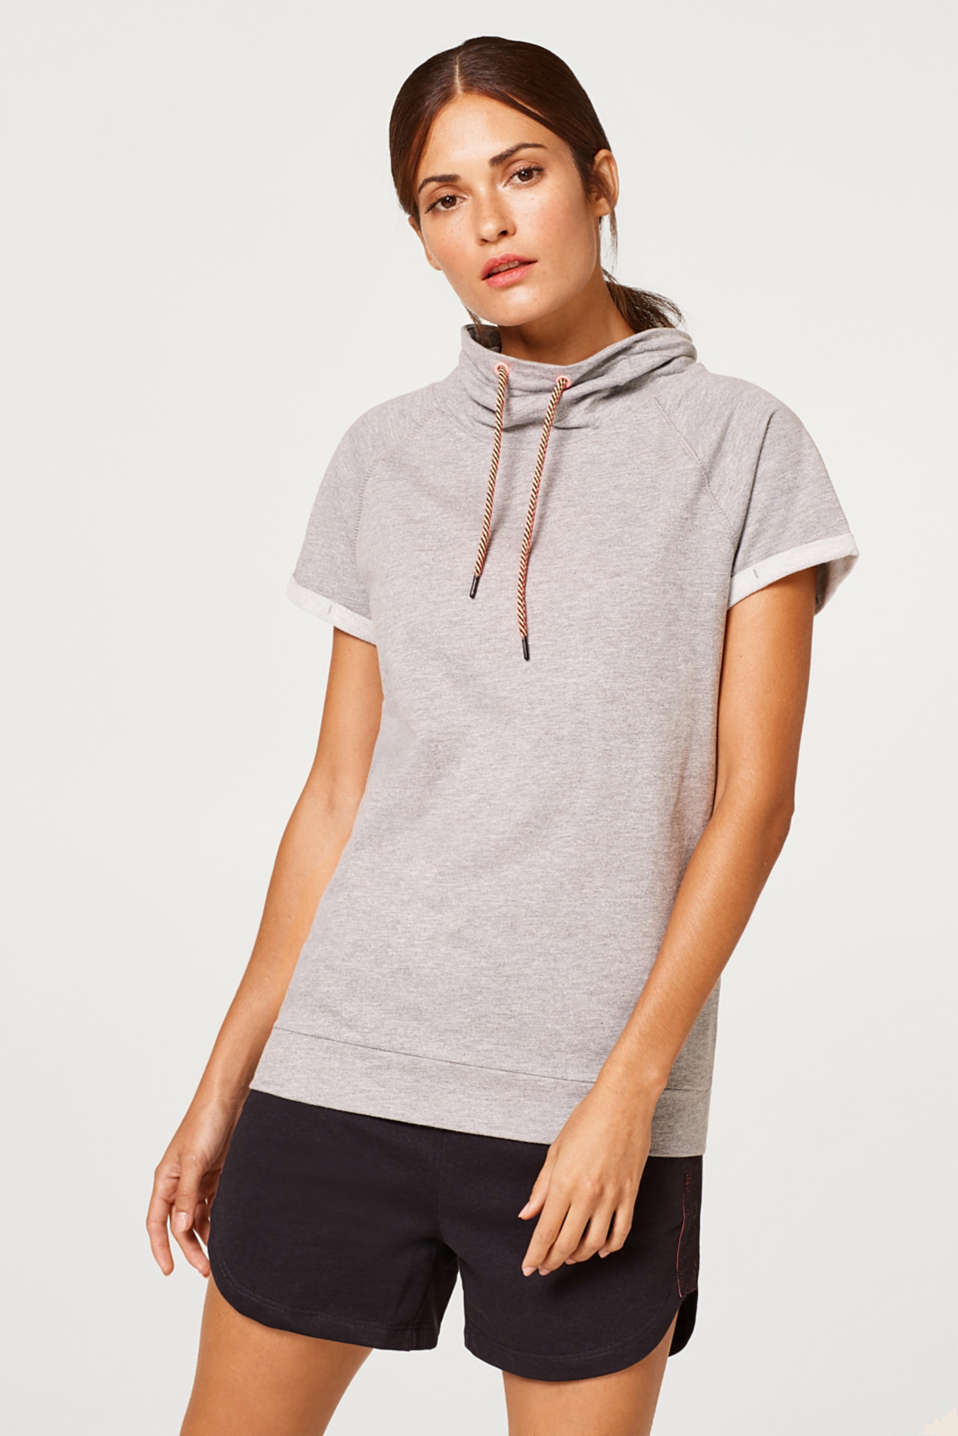 Esprit - Summer sweatshirt with a high band collar, blended cotton